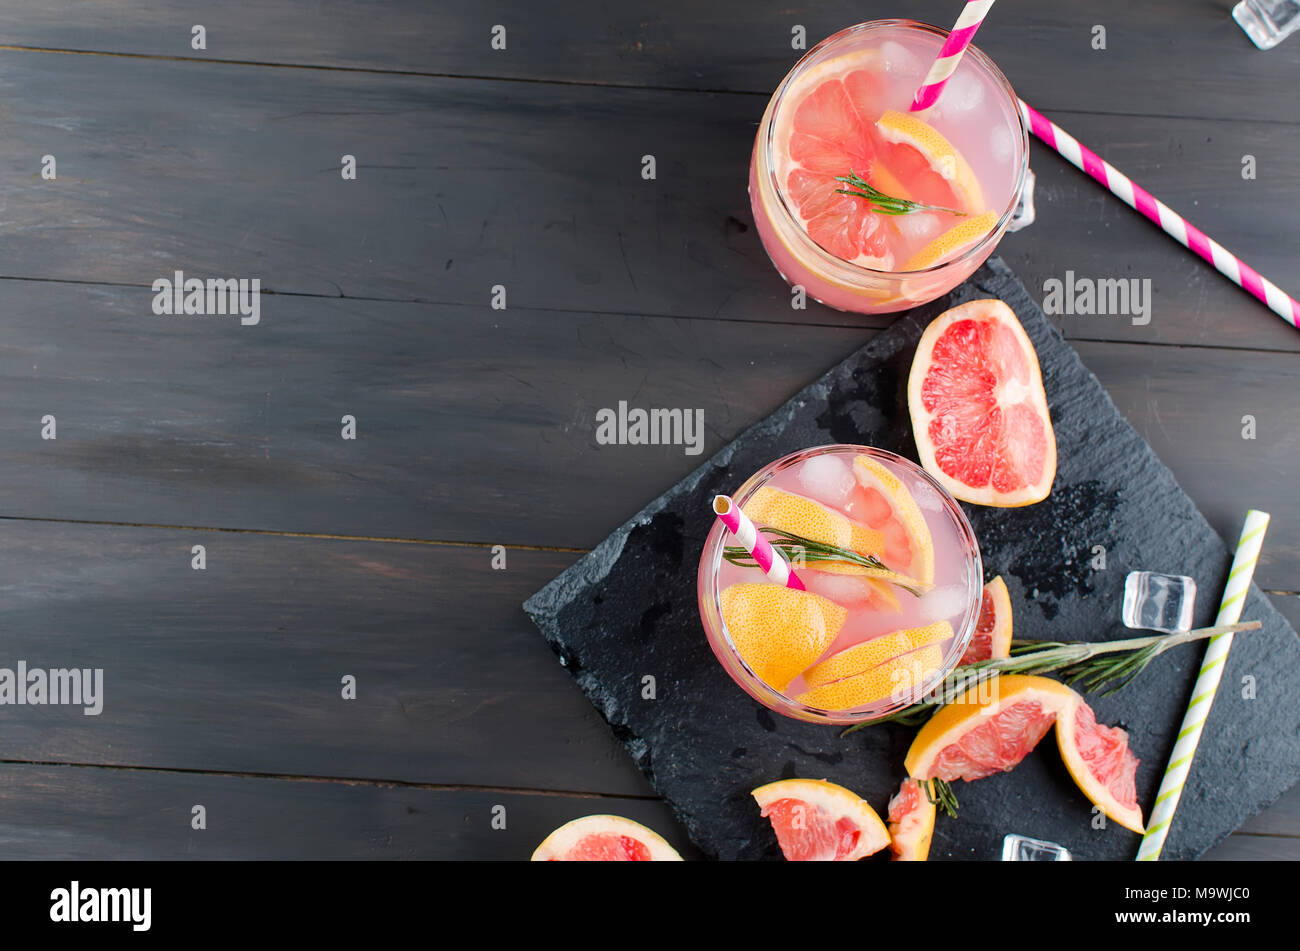 Cocktail with grapefruit slices and ice, ingredients for a drink on dark wooden table, copy space - Stock Image